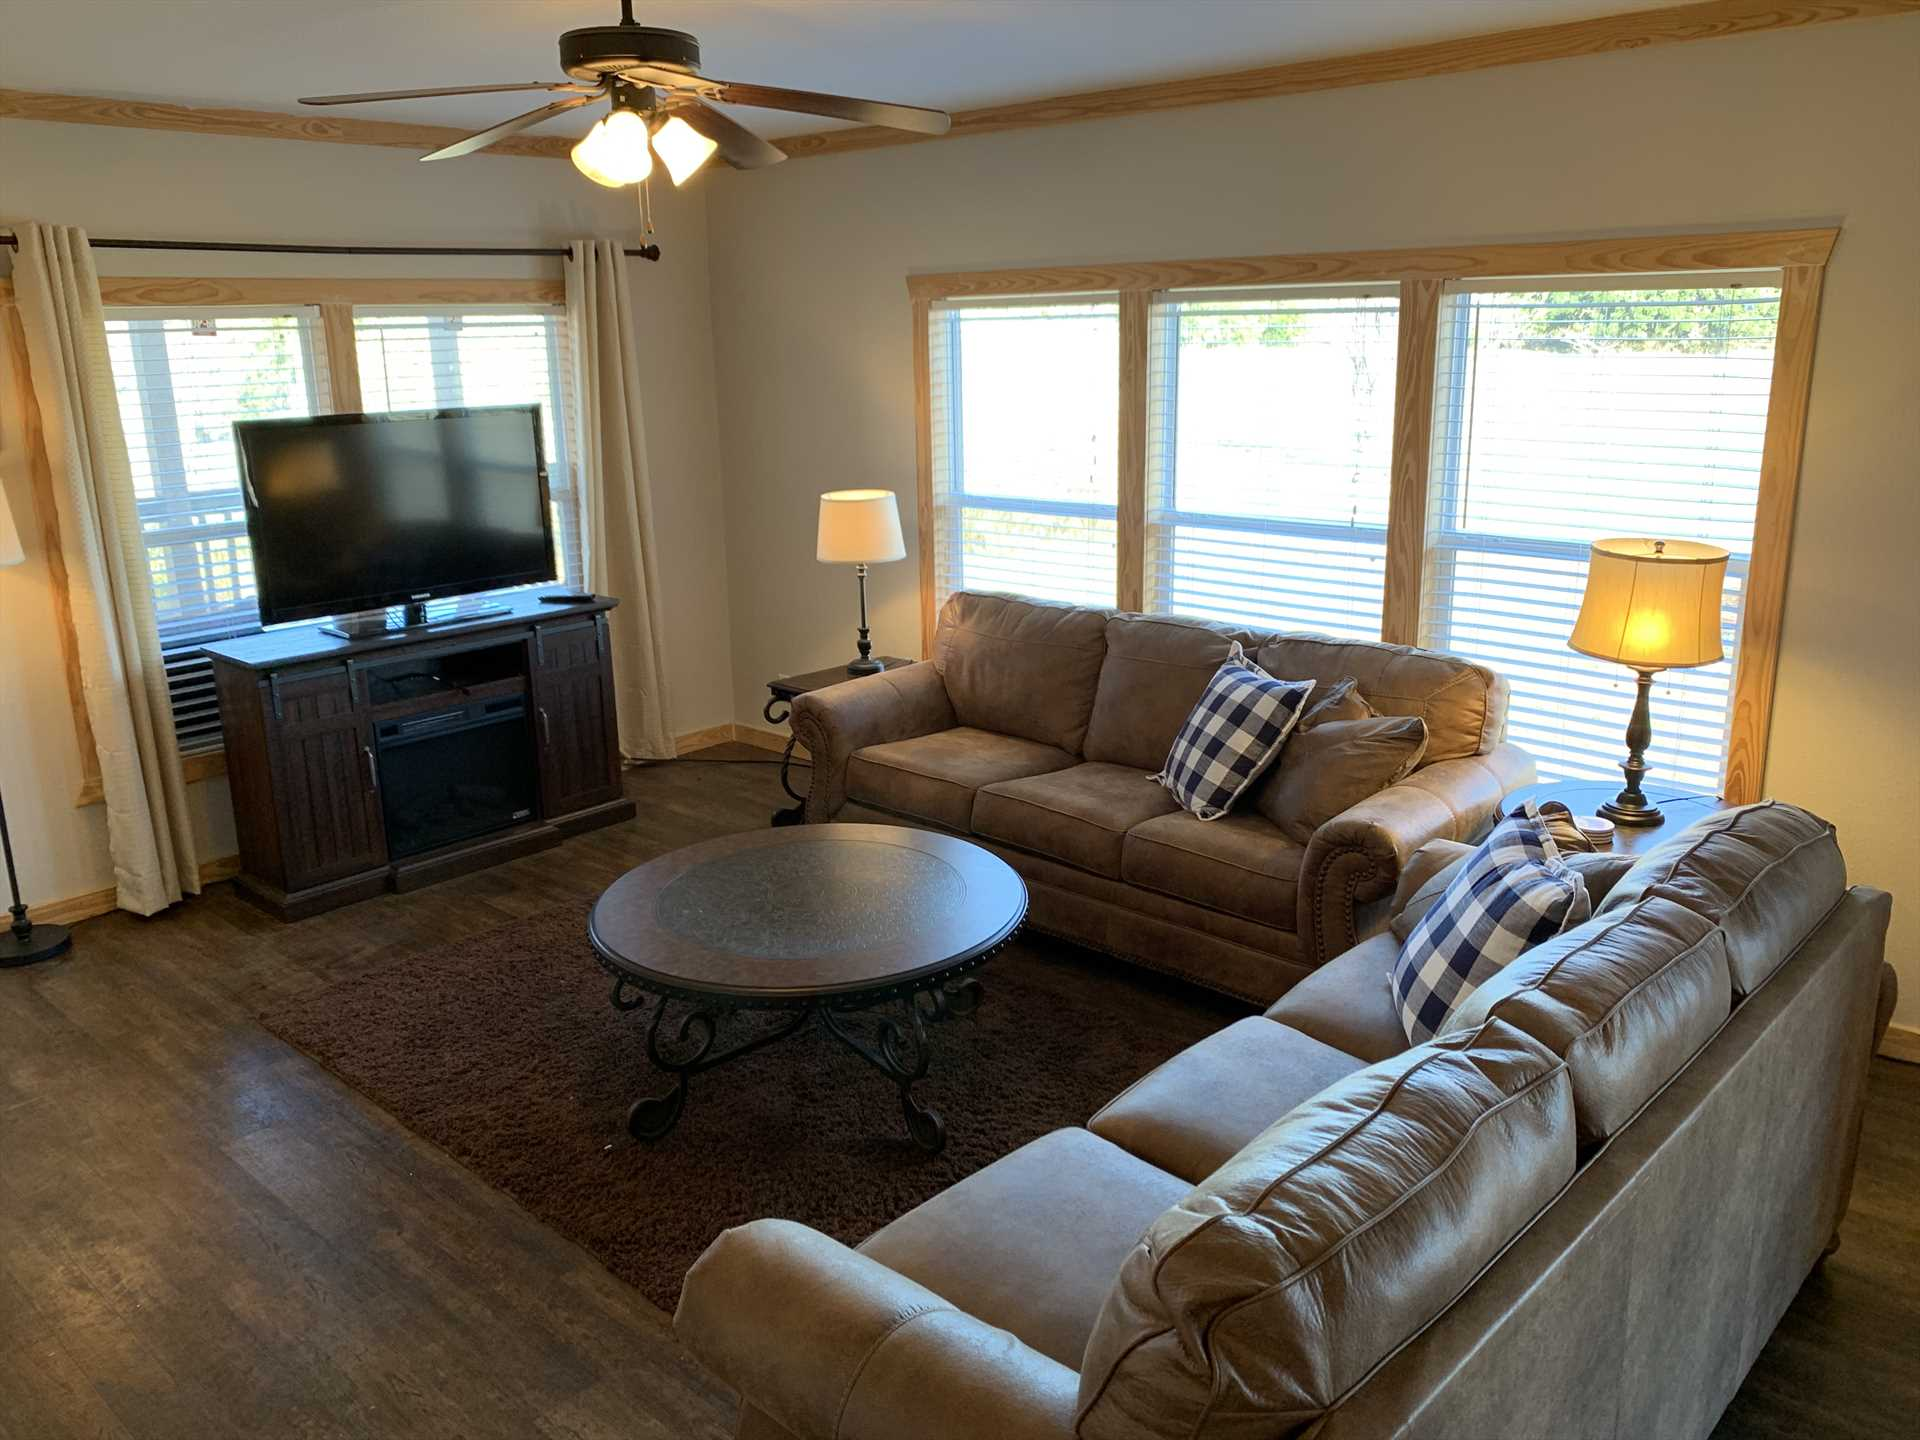 Satellite TV and Wifi are the tech extras you'll find in the comfy living area, flooded with warm natural light during the day.